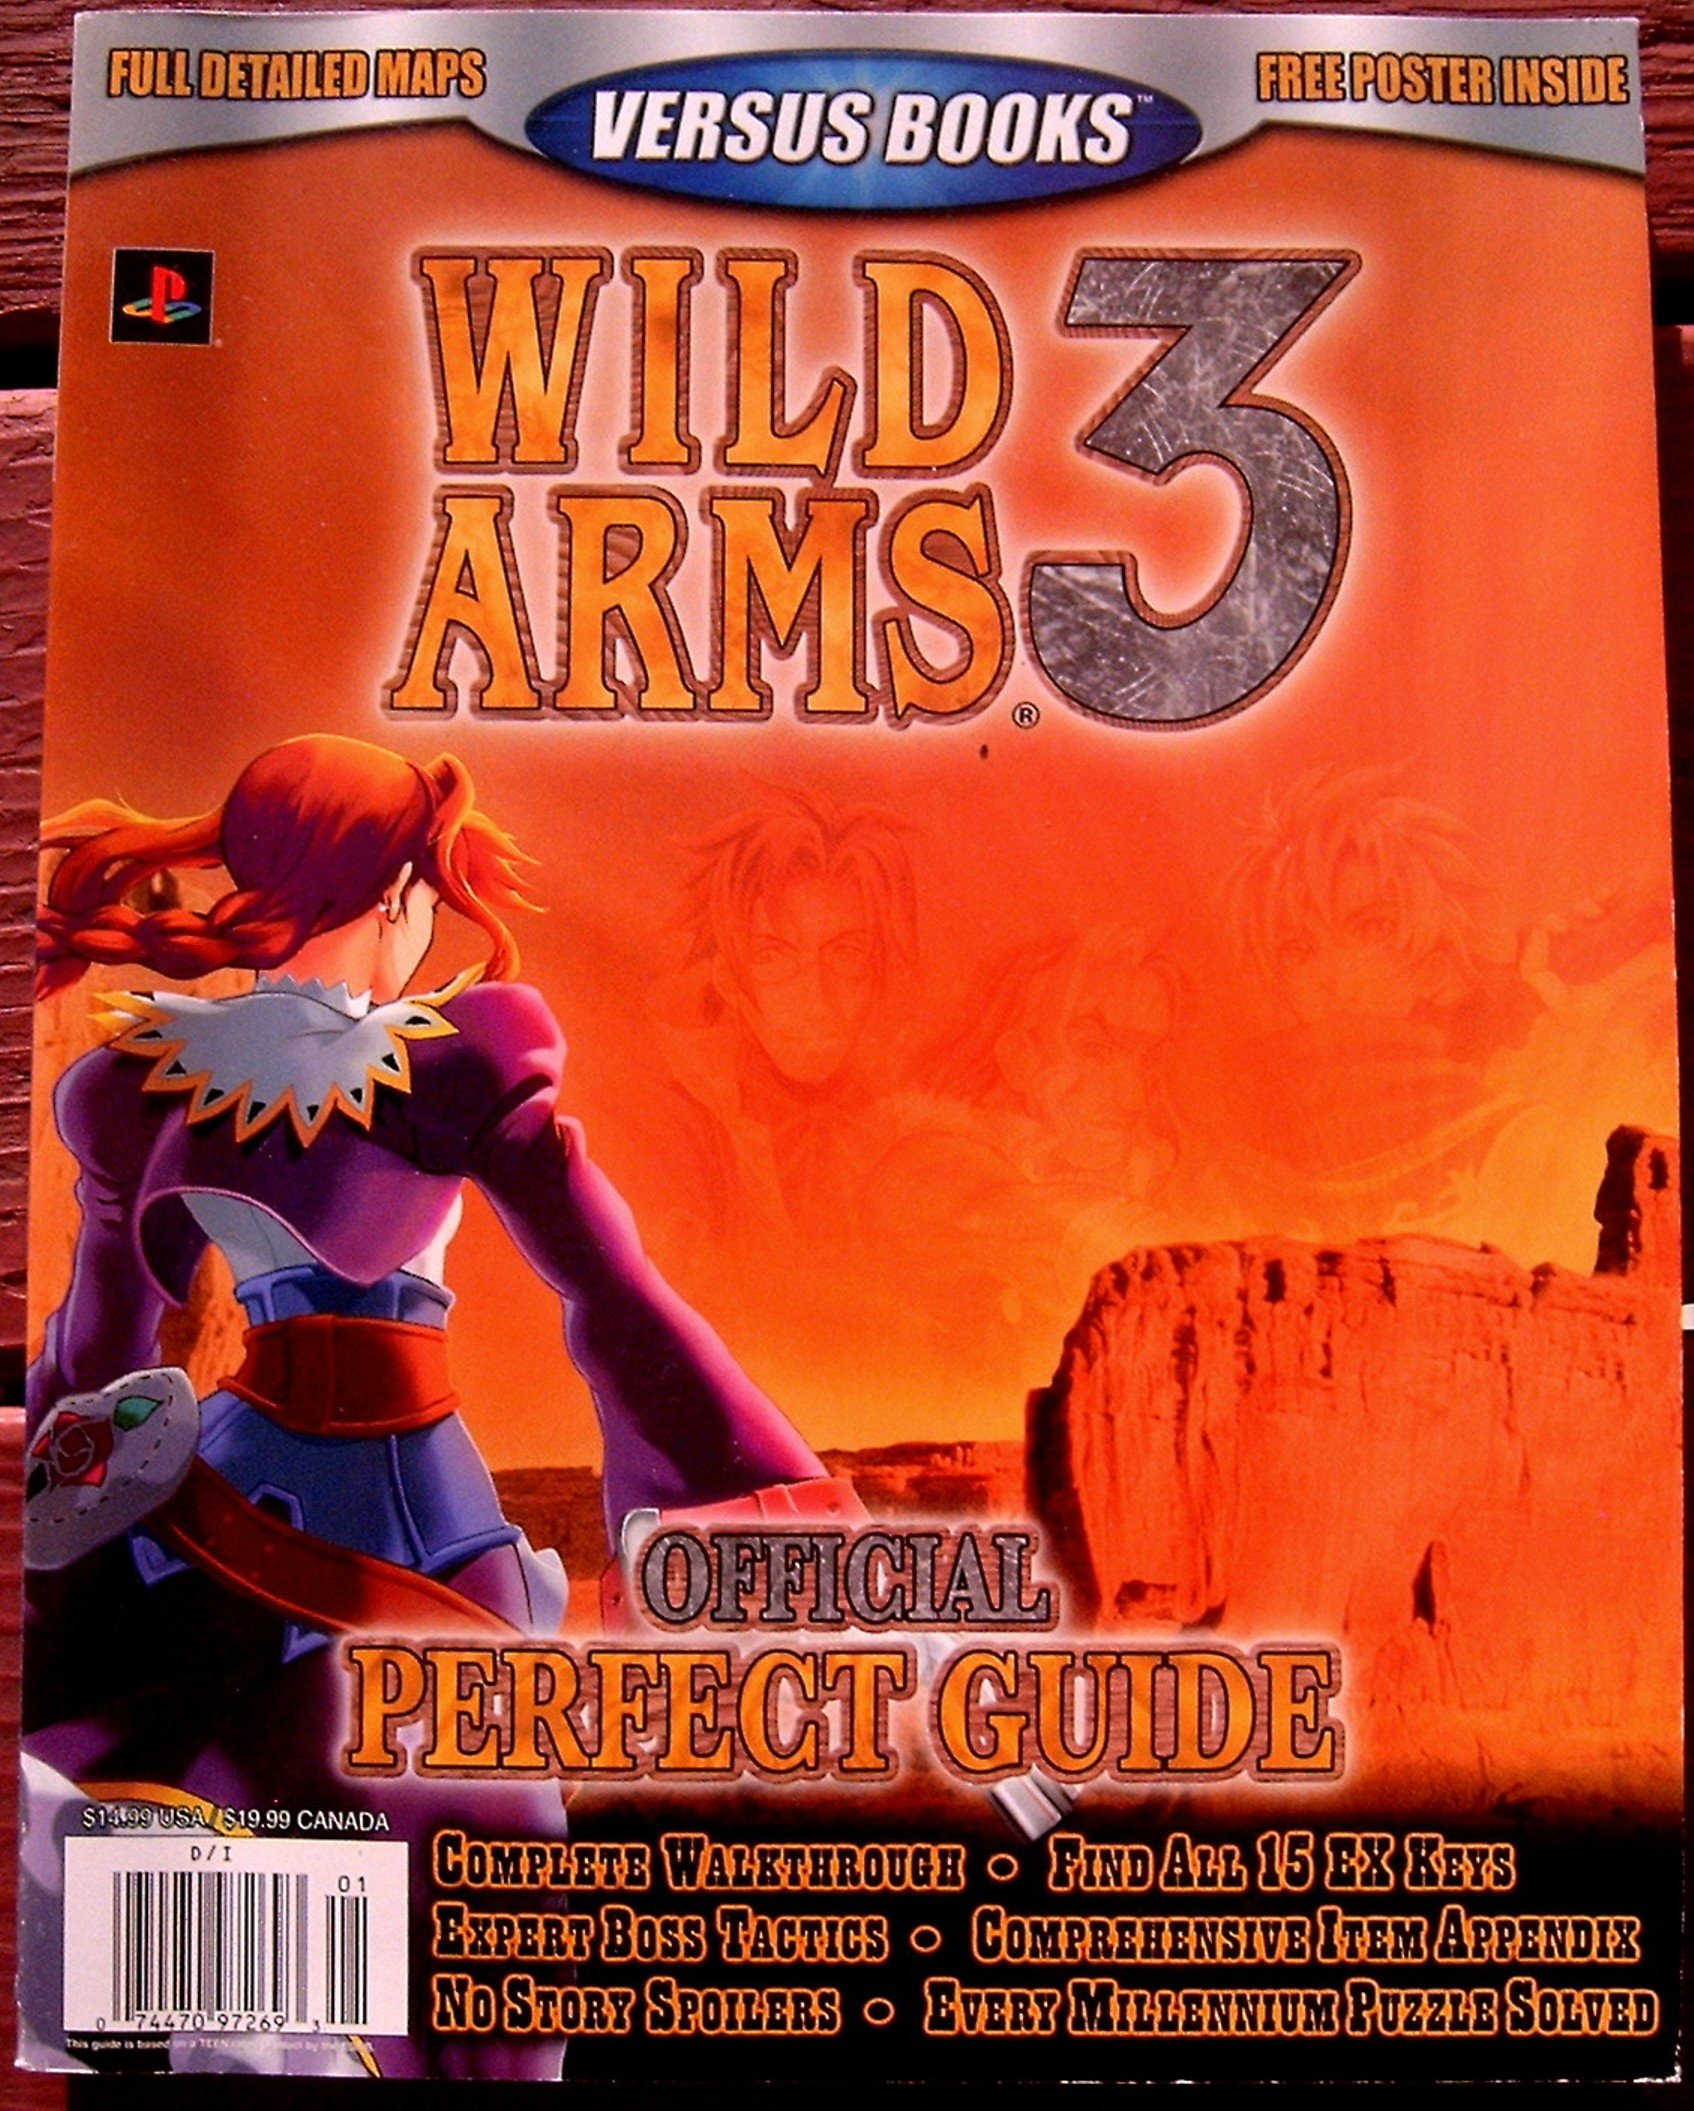 Download Versus Books Official Perfect Guide for Wild Arms 3 PDF